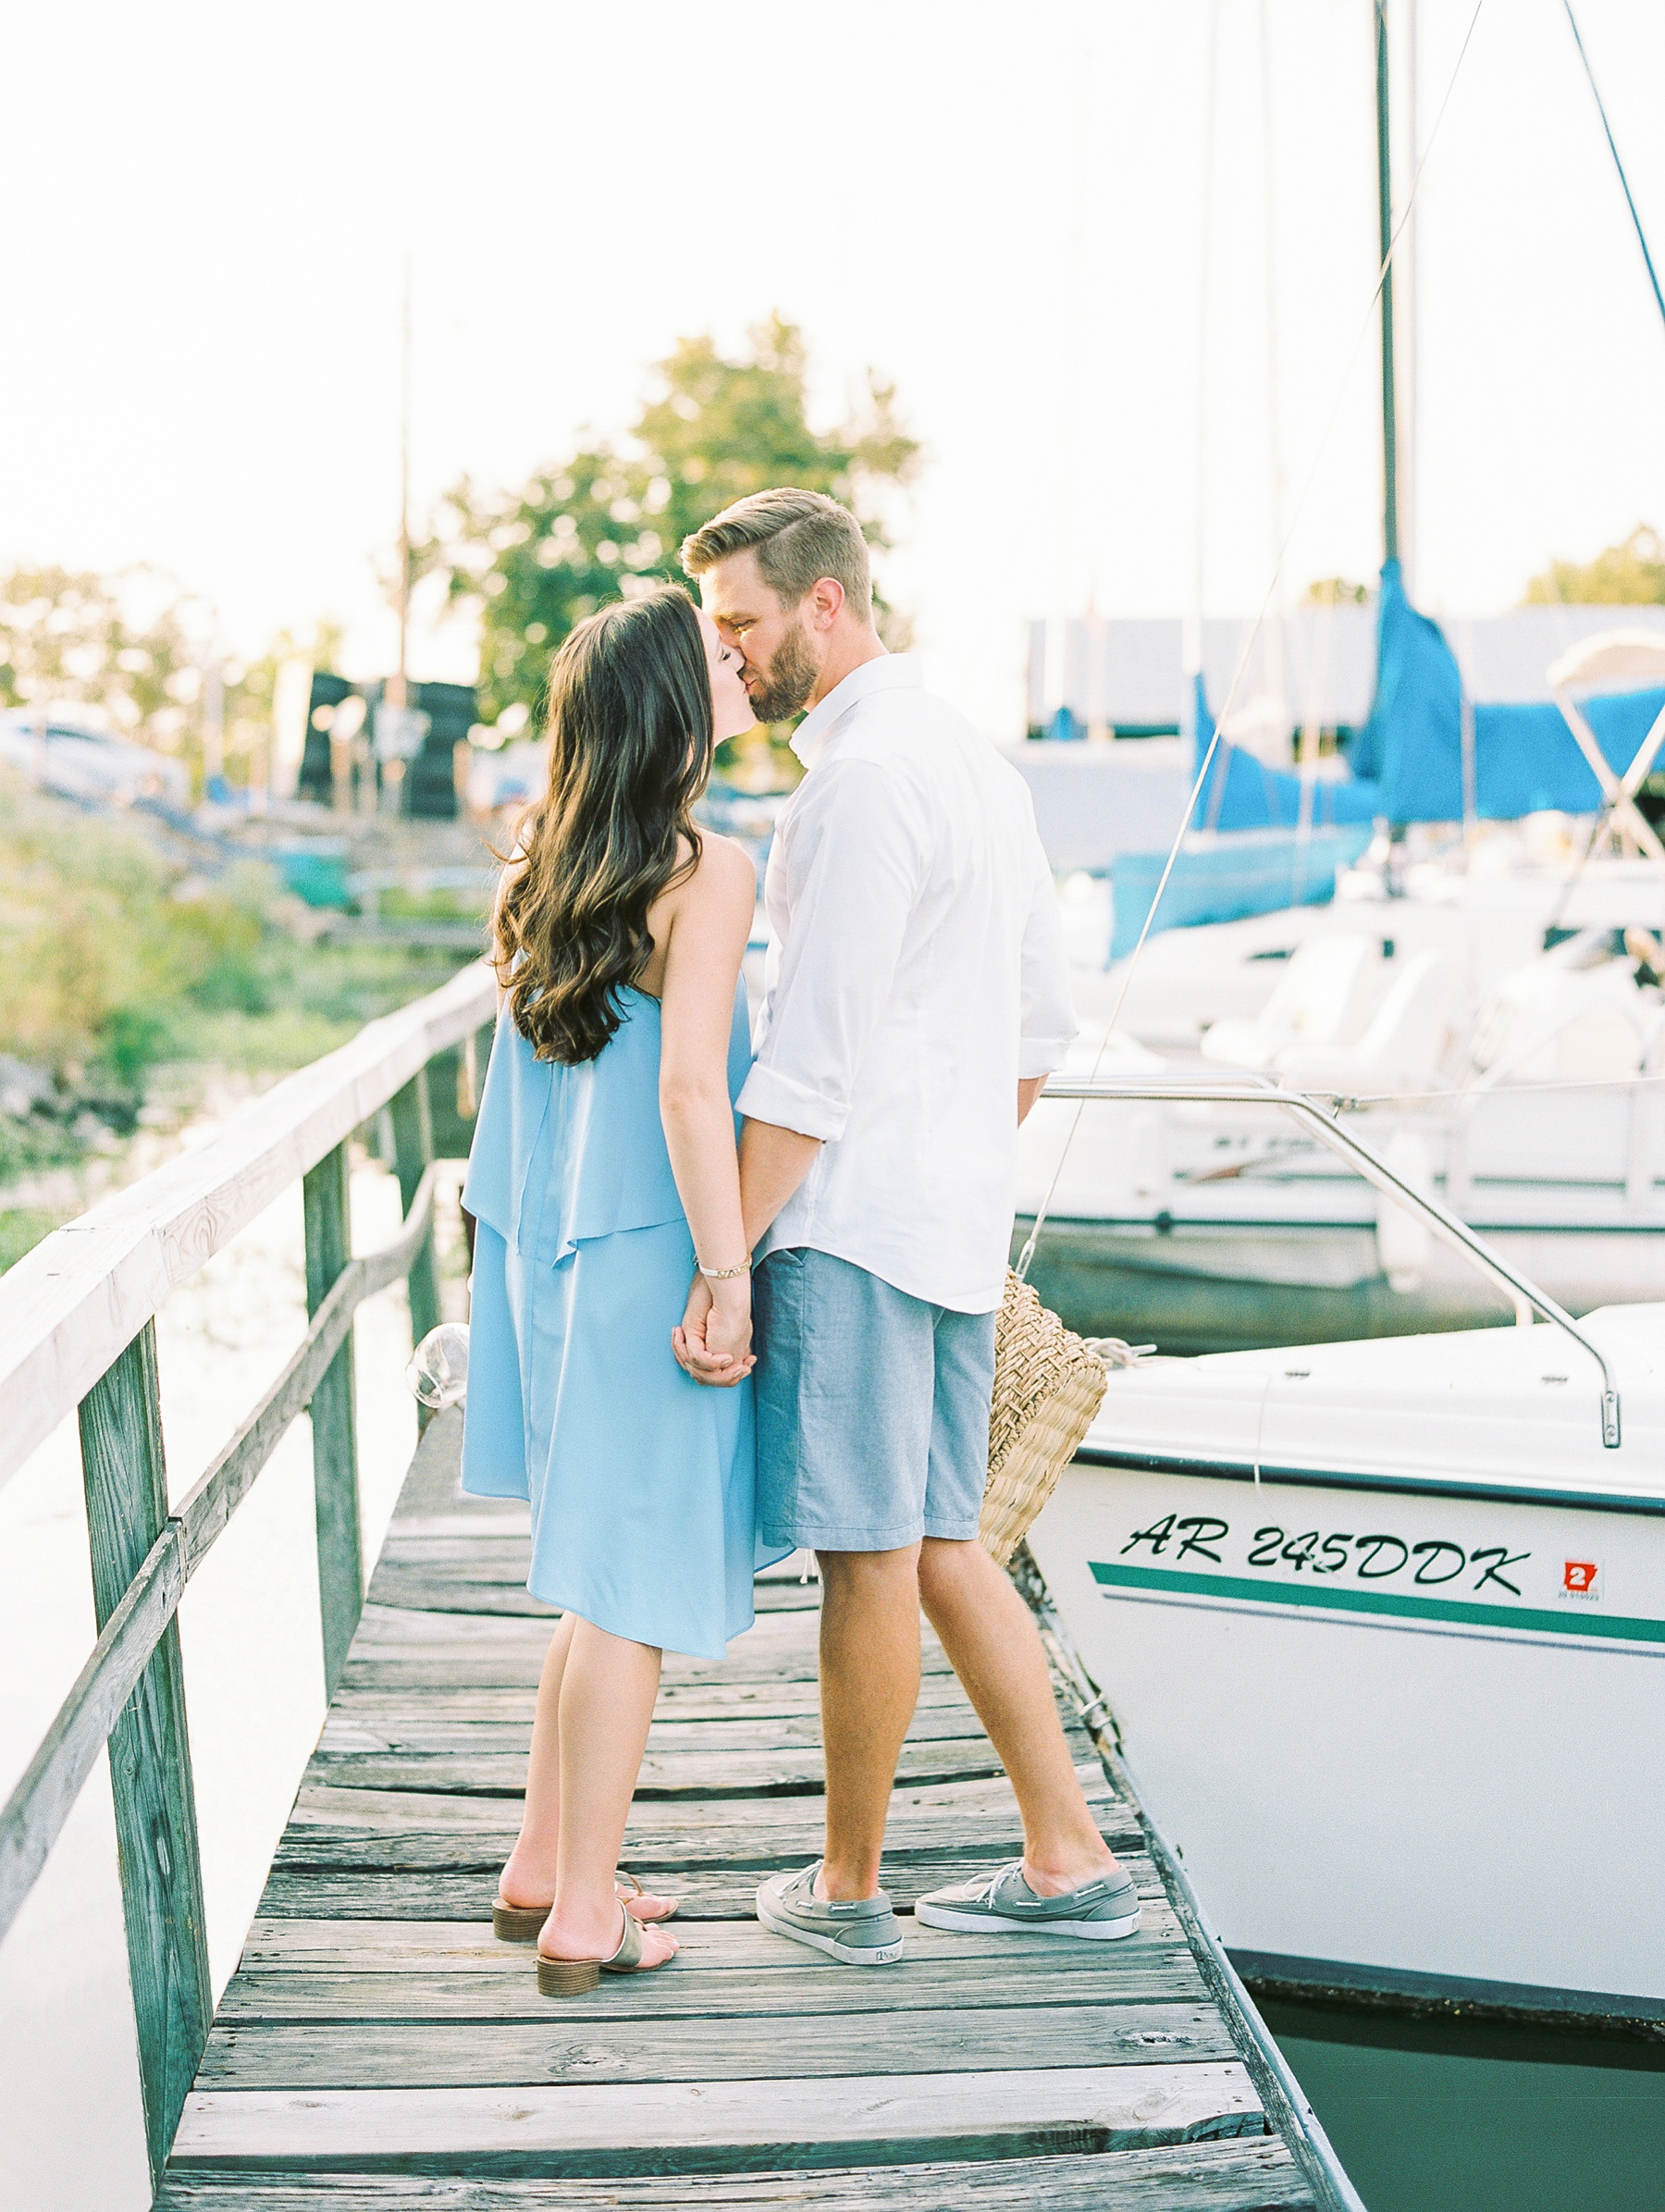 Nautical Boat Engagement Session Film Photographer_0581.jpg